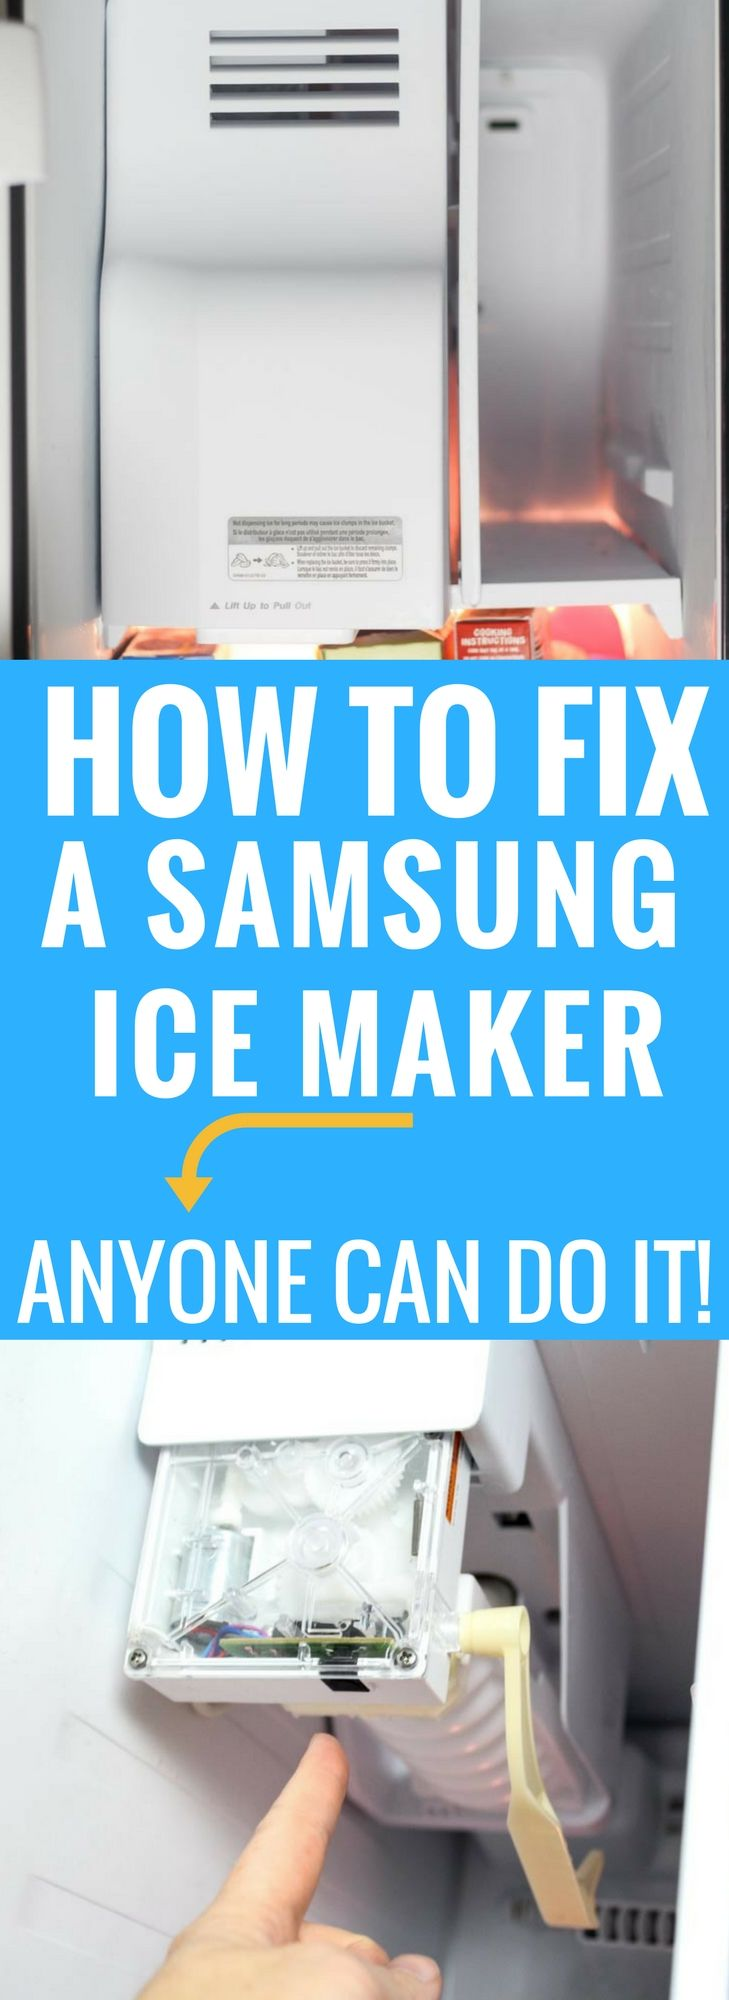 How to Fix a Samsung Ice Maker and save up to $250 in repair cost!